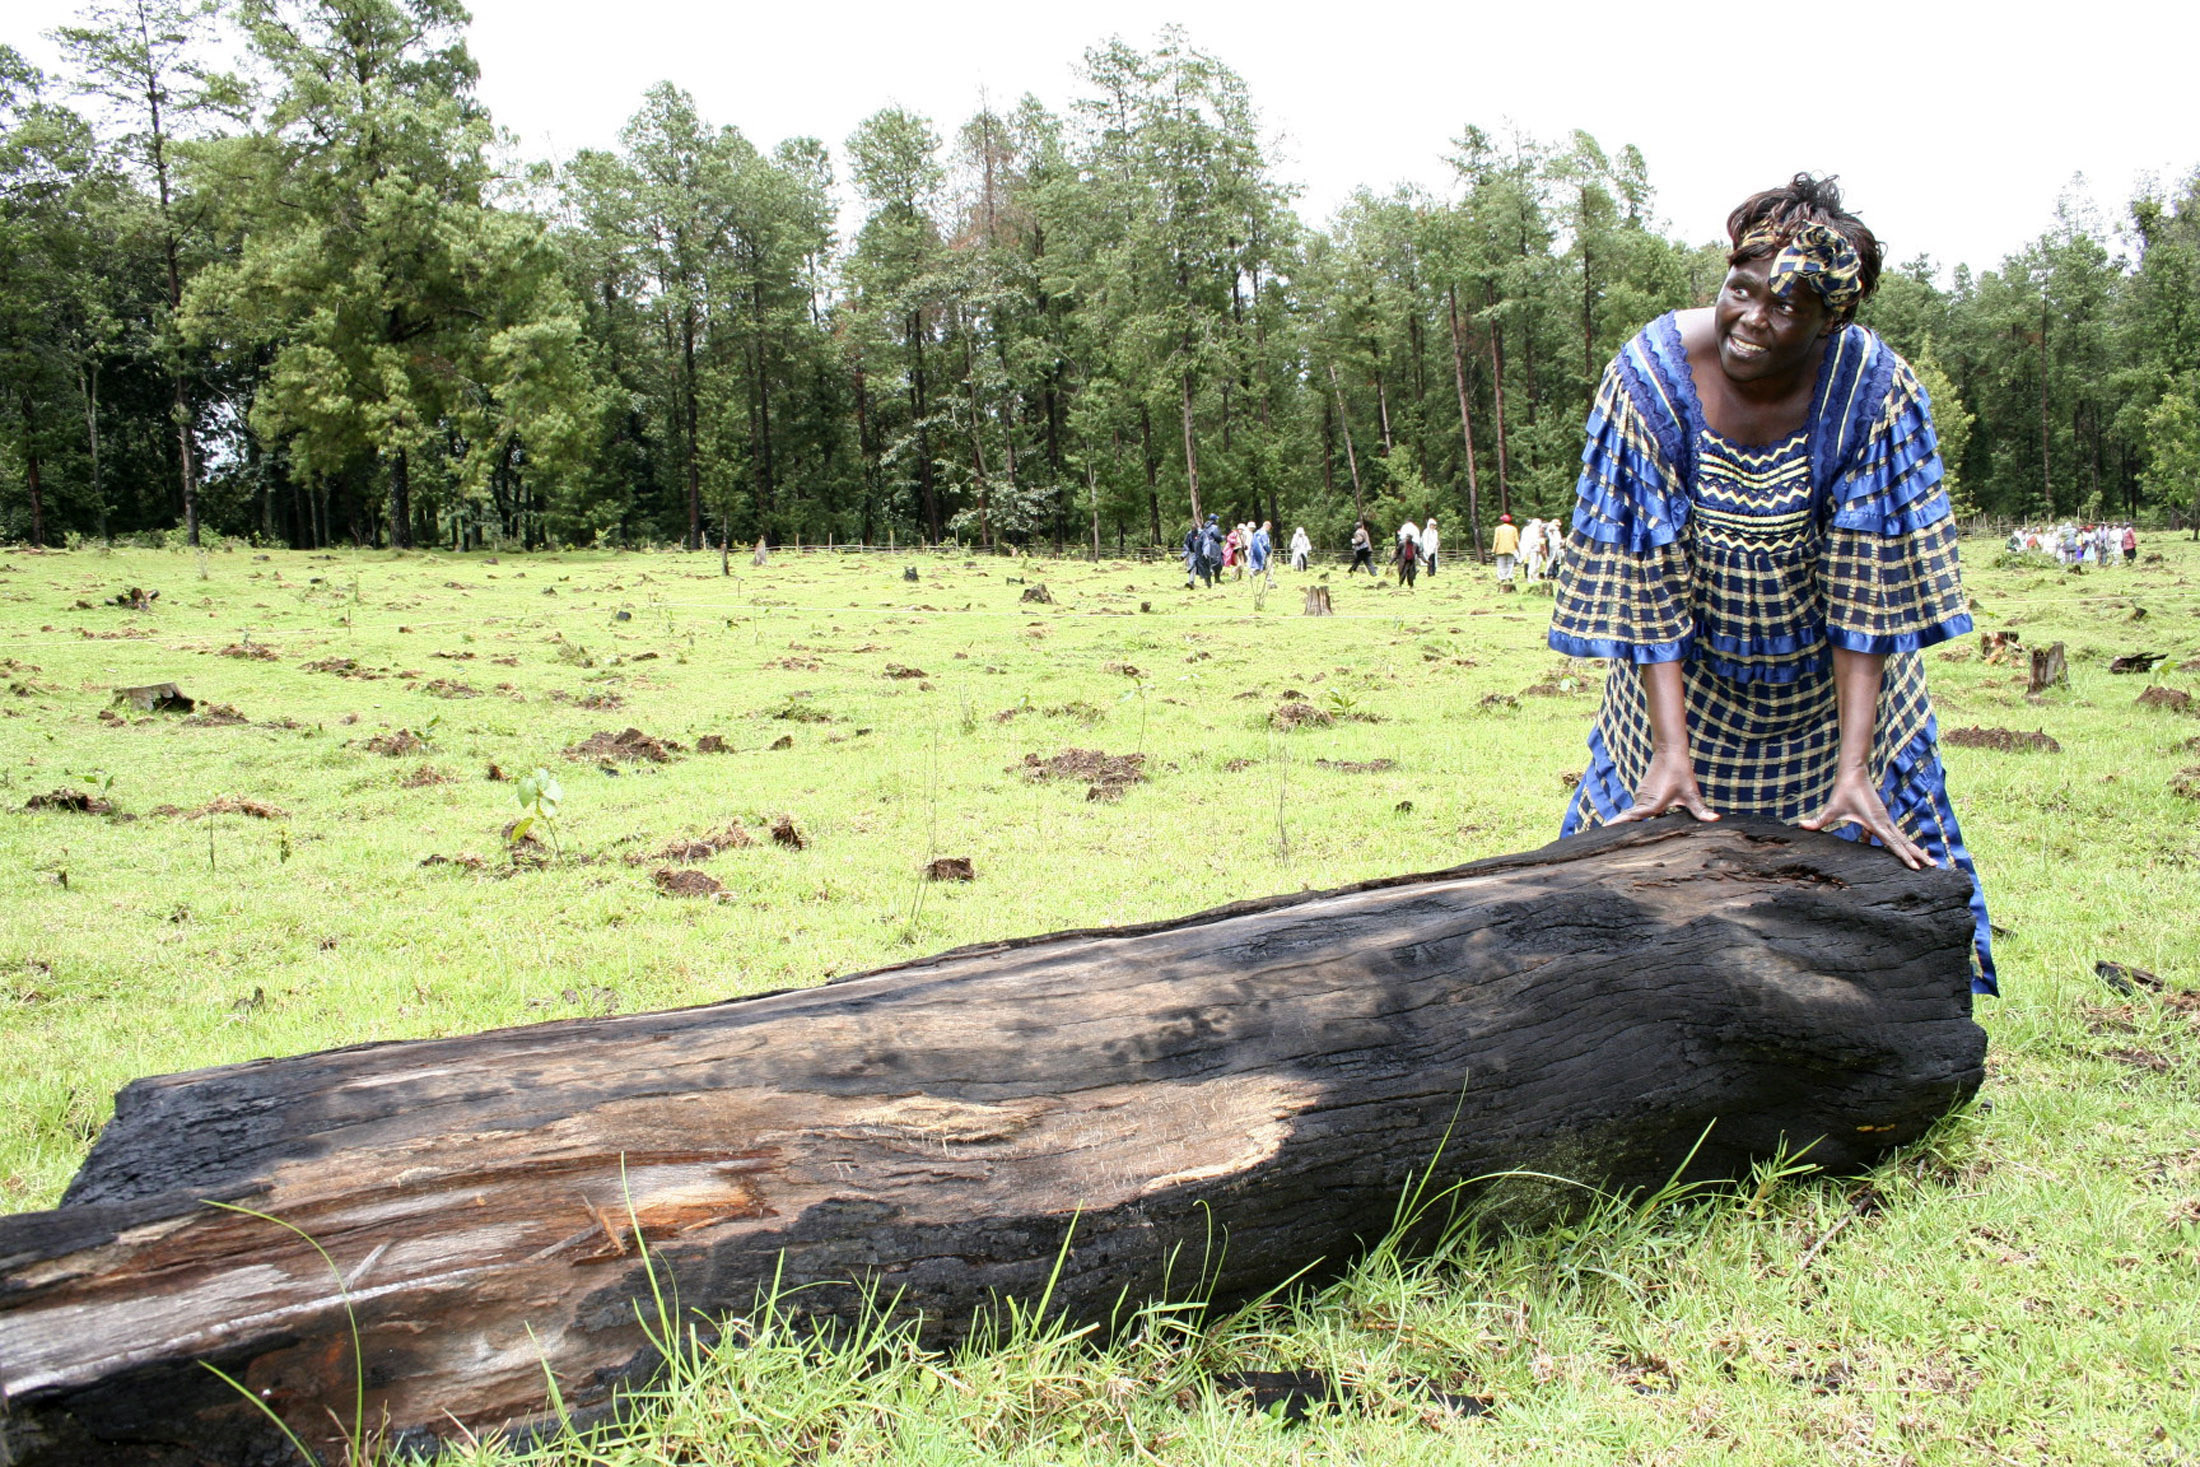 Nobel prize winner Wangari Maathai, who is also Kenya's Assistant Minister for Environment, touches a tree stump cut by illegal loggers during a ceremony to plant trees in Sabatia forest Koibatek, in Eldama Ravine, November 23, 2006. Some 3,000 seedlings were planted by 150 volunteers from Japan, in a tree planting event as part of the one billion tree planting campaign in support of the Green Belt Movement lead by Wangari Maathai. REUTERS/Antony Gitonga (KENYA) - GM1DTZVRNEAA